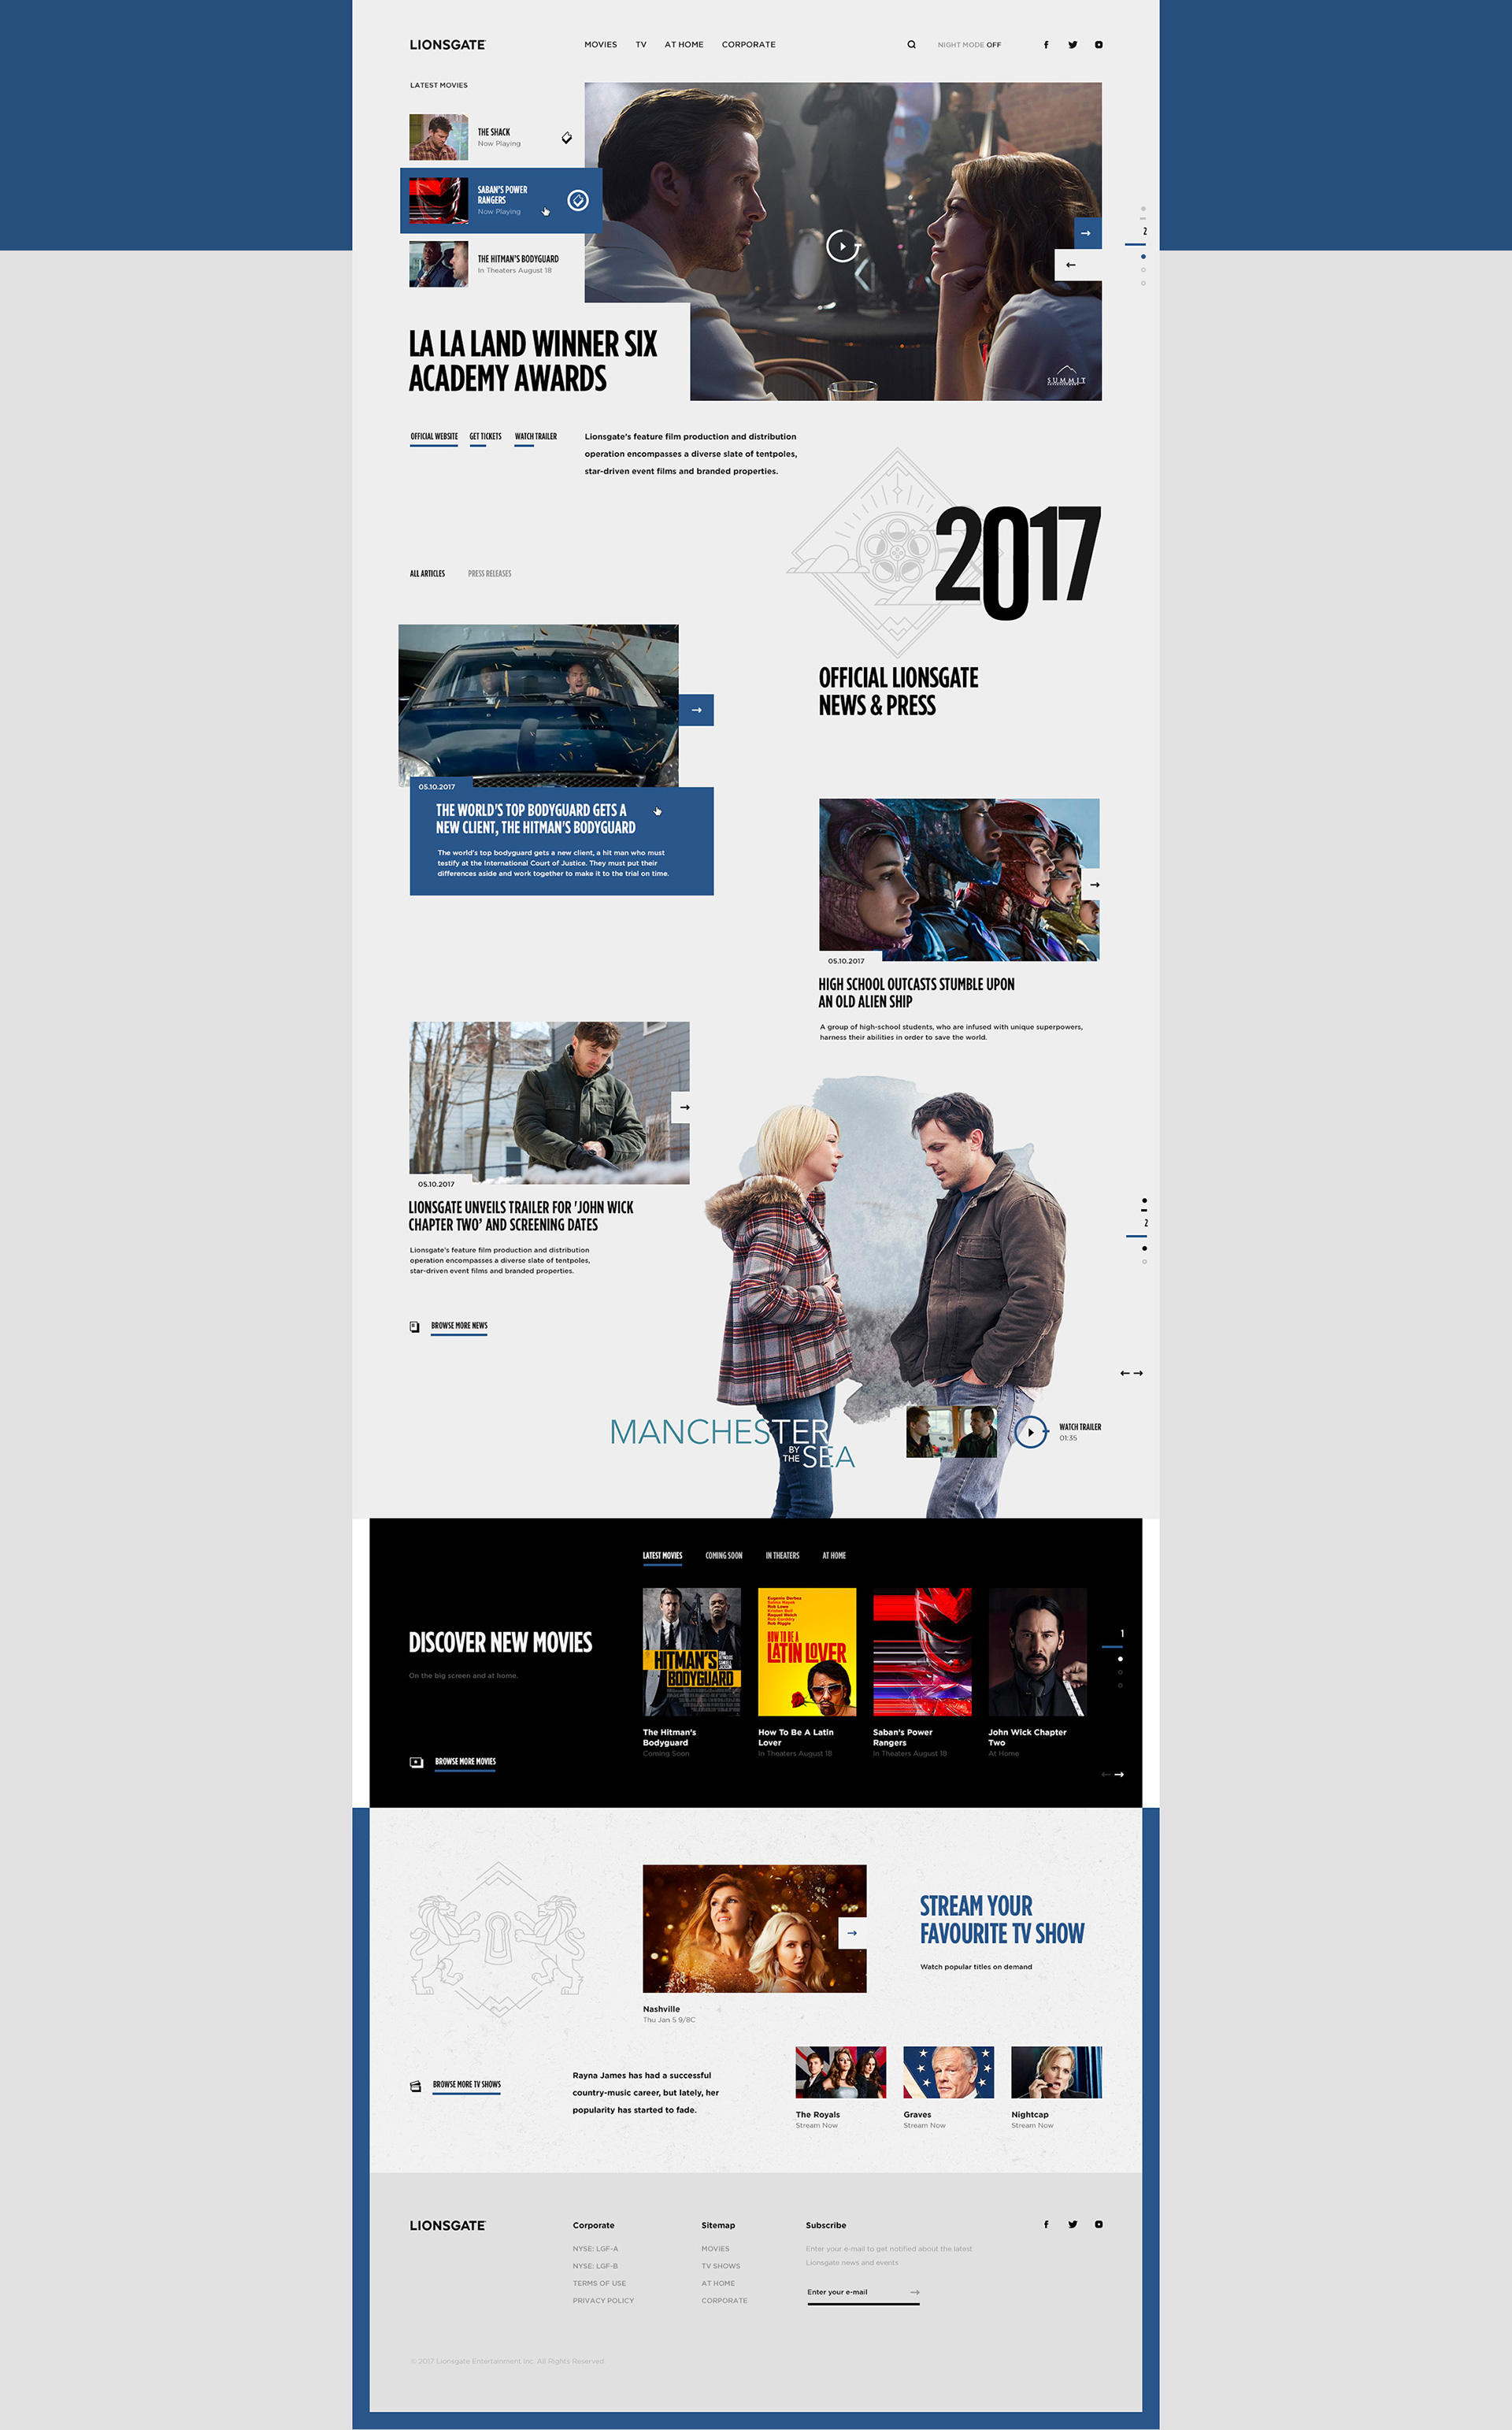 Web Design & UI/UX: Lionsgate Pitch Concept